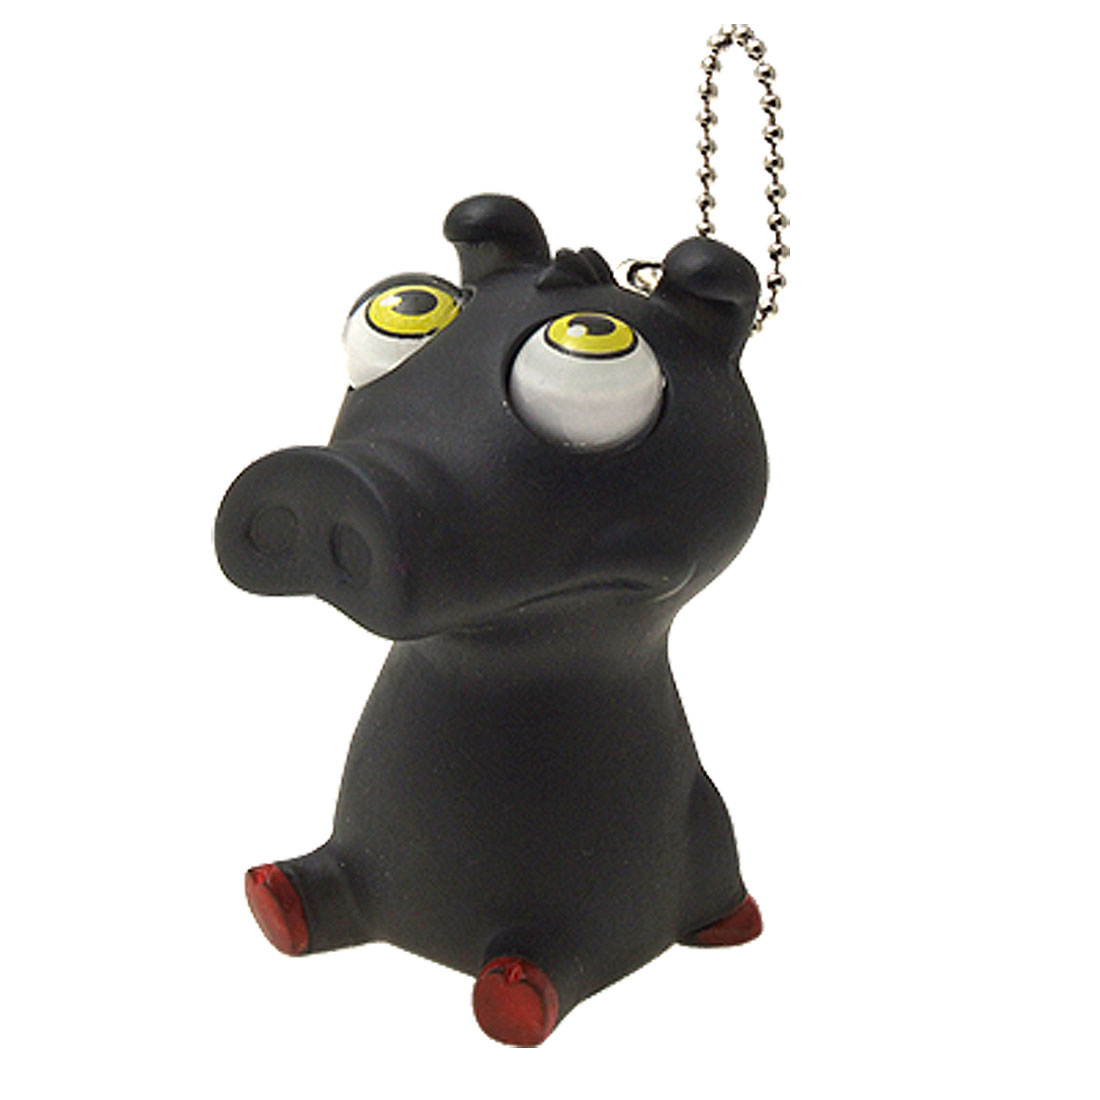 Black Animal Squeeze Relief Toy Gift w. Keychain